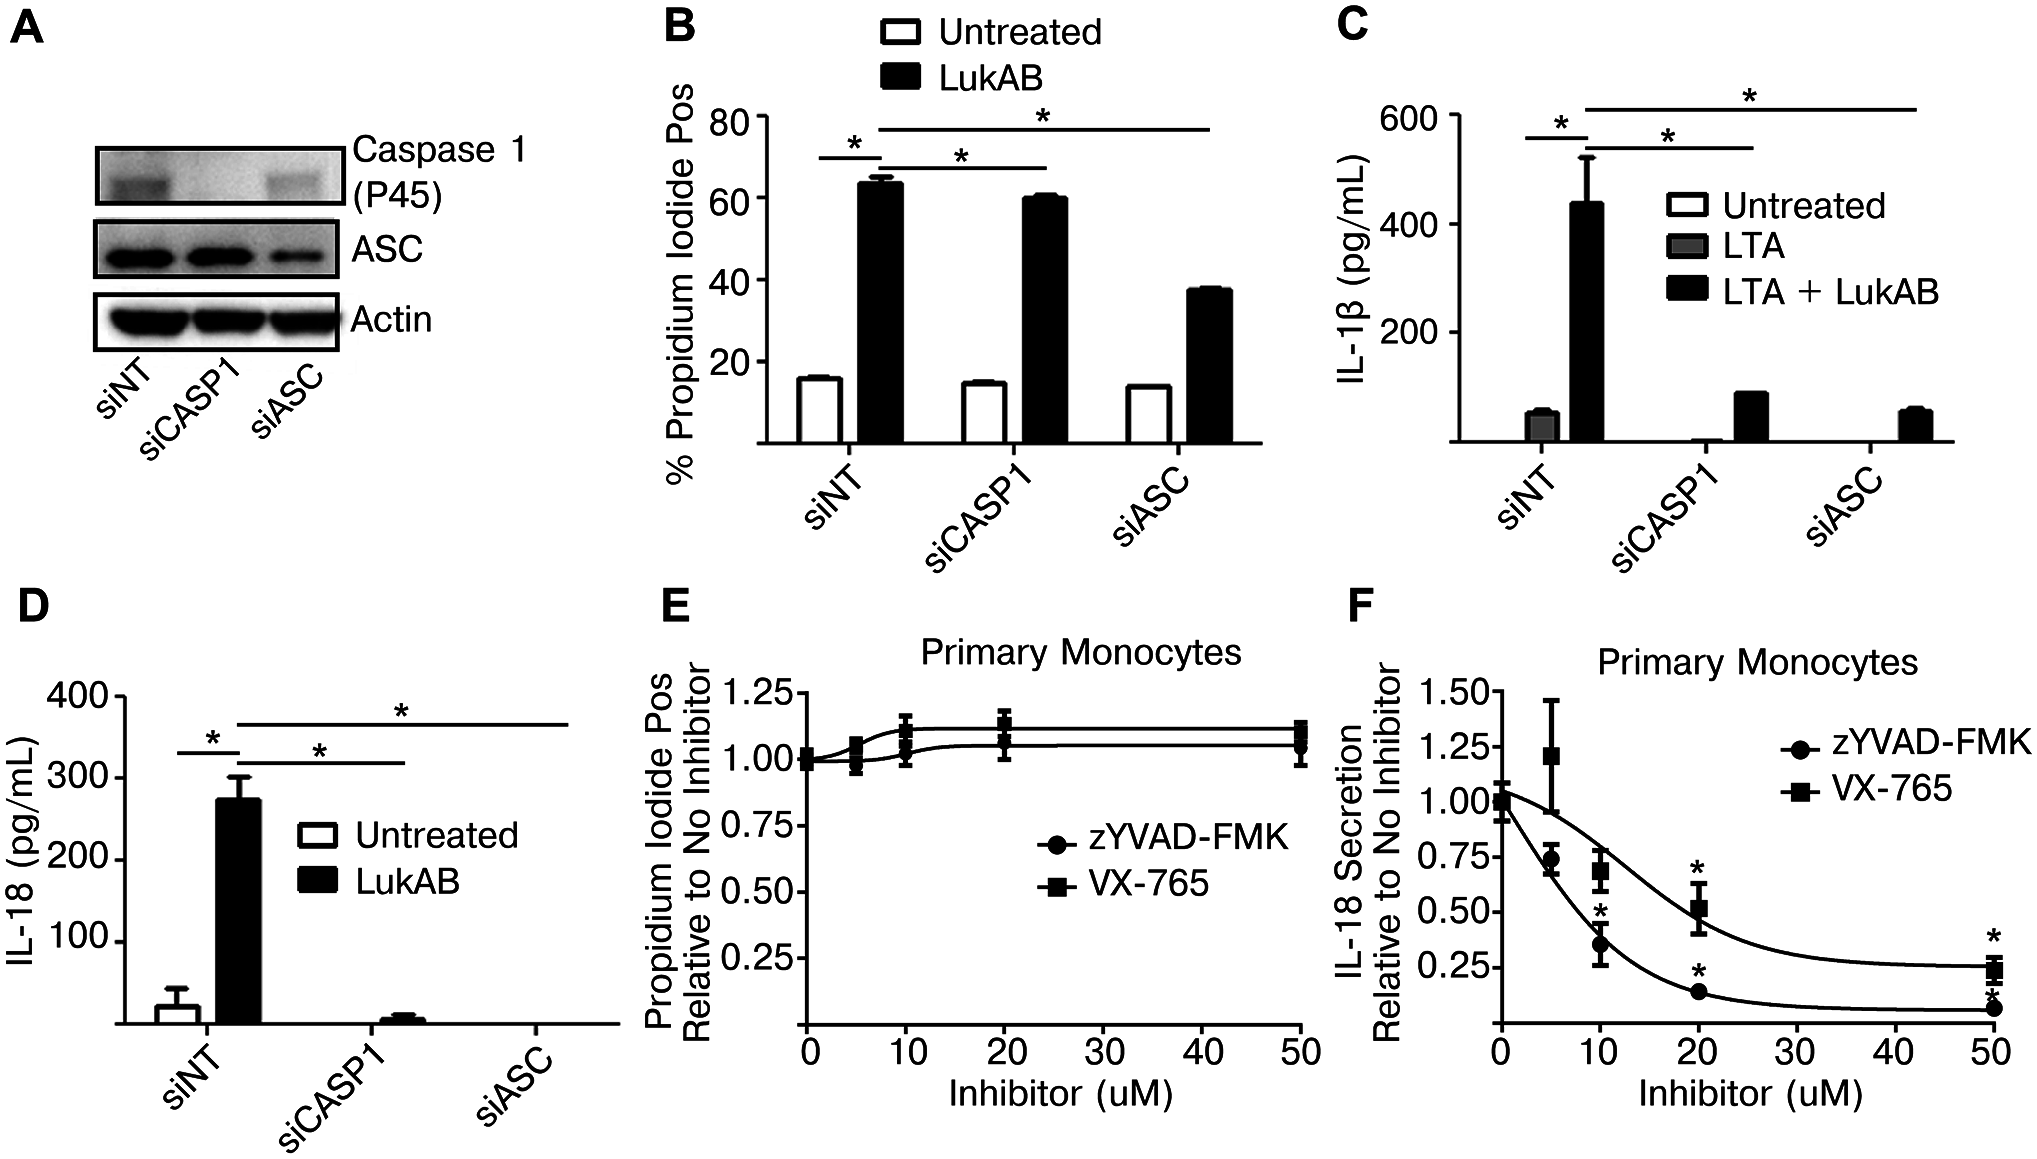 Genetic or pharmacologic disruption of Caspase 1 blocks LukAB-induced cytokine secretion but not cell death.